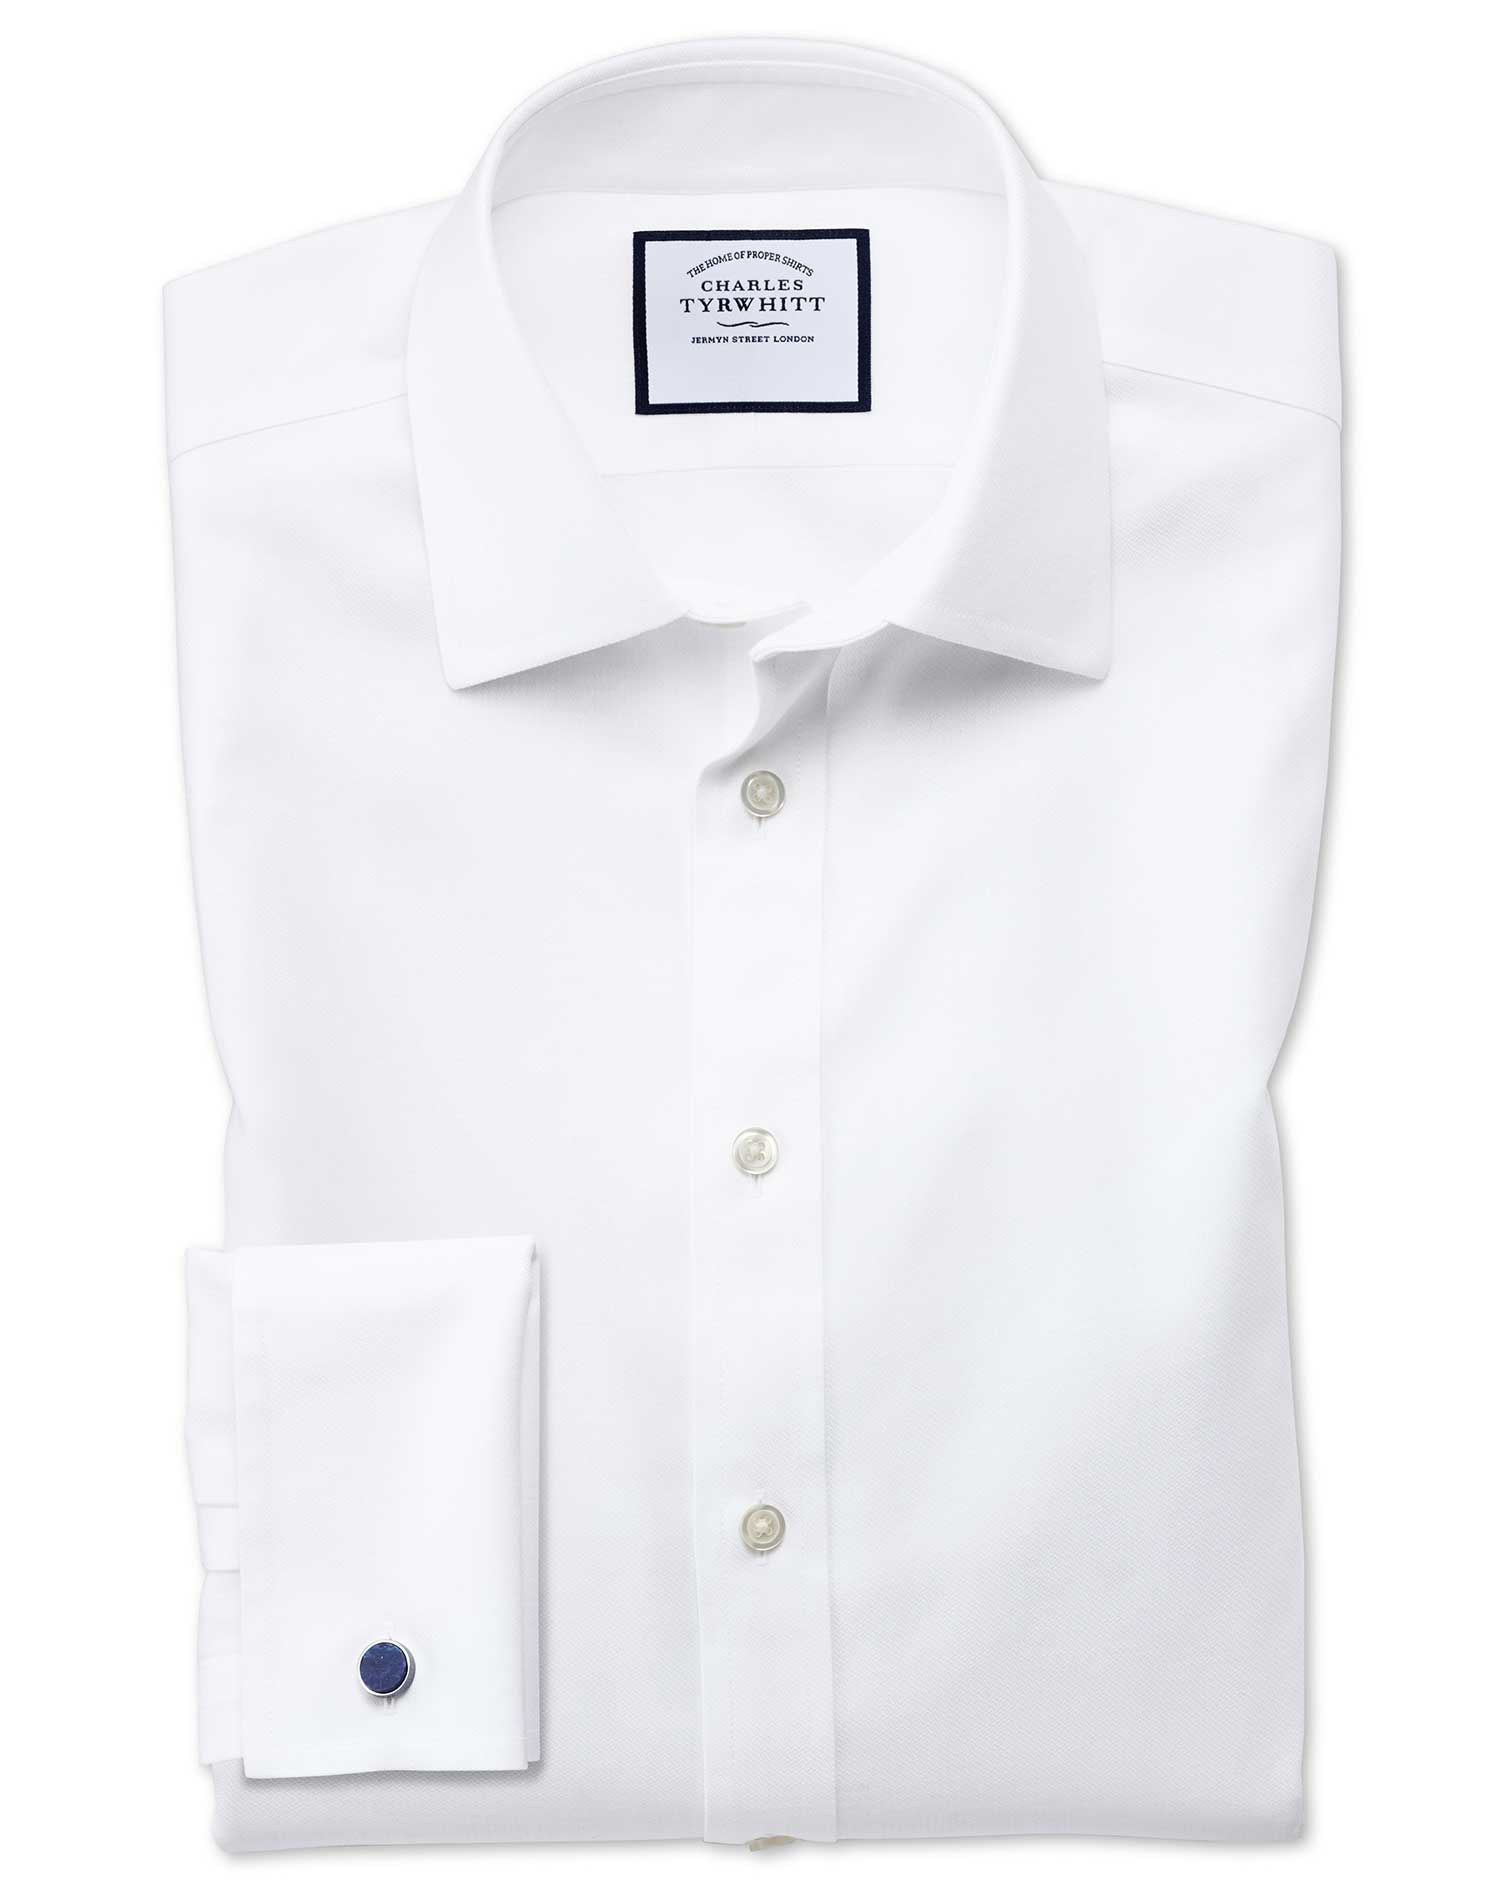 Slim Fit Non-Iron Step Weave White Cotton Formal Shirt Double Cuff Size 17/37 by Charles Tyrwhitt